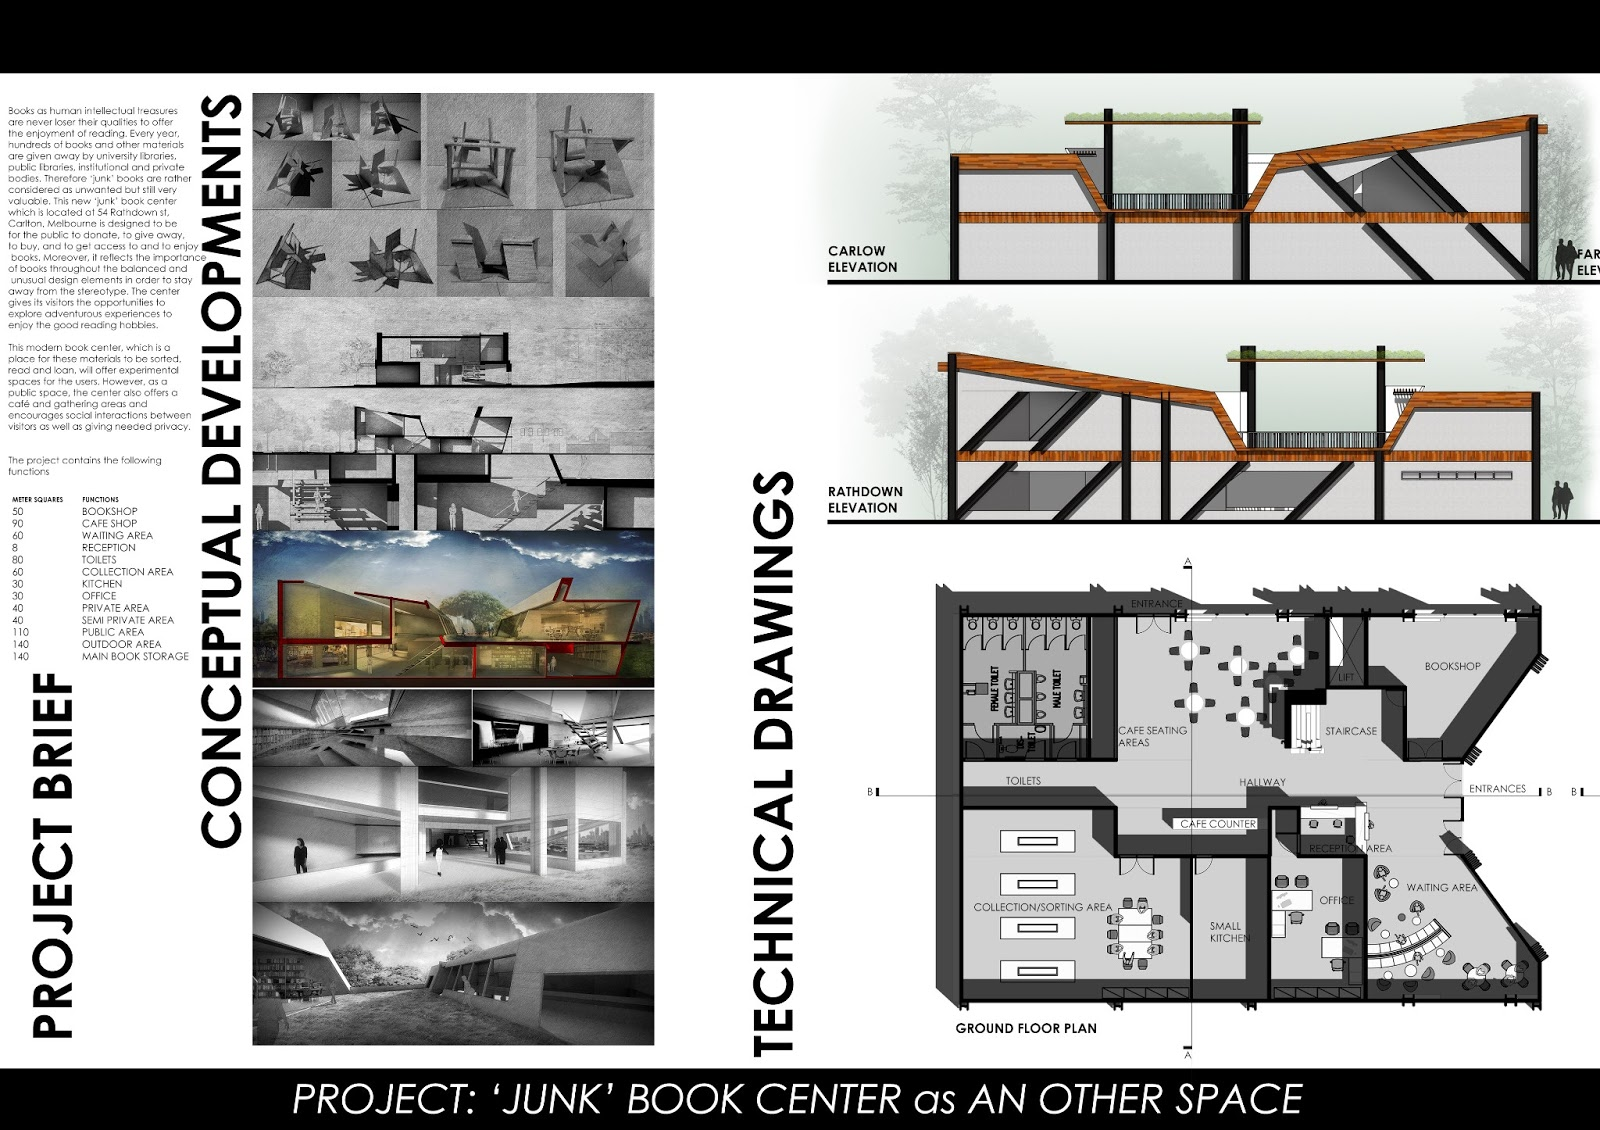 Interior design by kevin to july 2013 - Interior design presentation layout ...